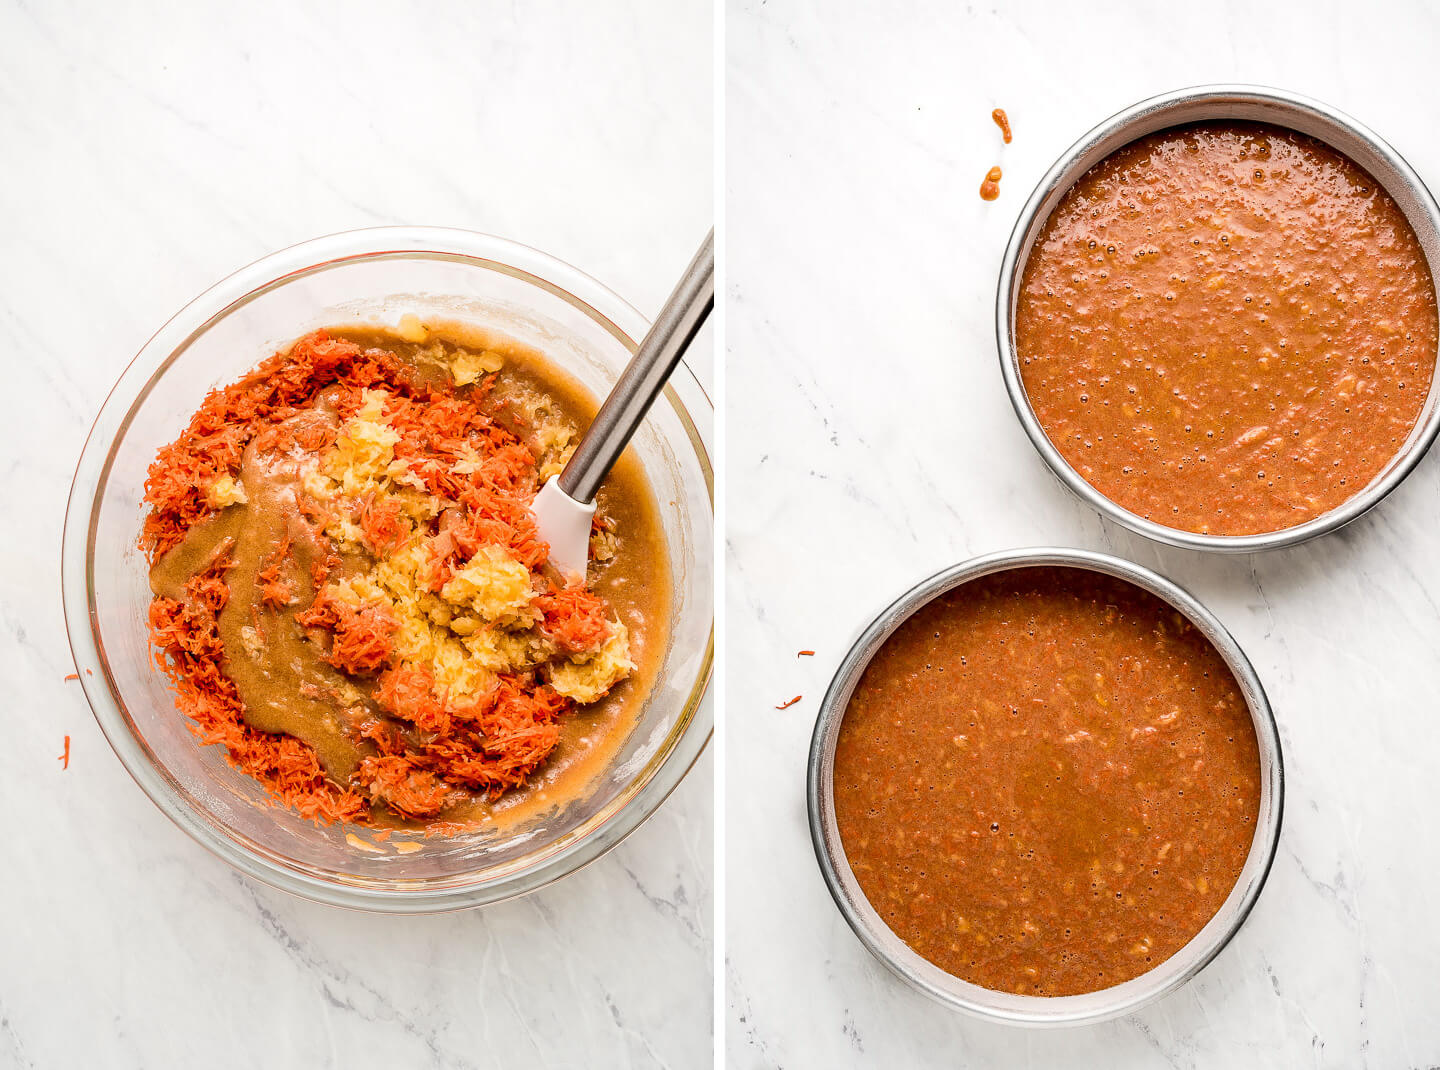 Diptych- stirring carrots and pineapple into batter; two round baking pans filled with batter.